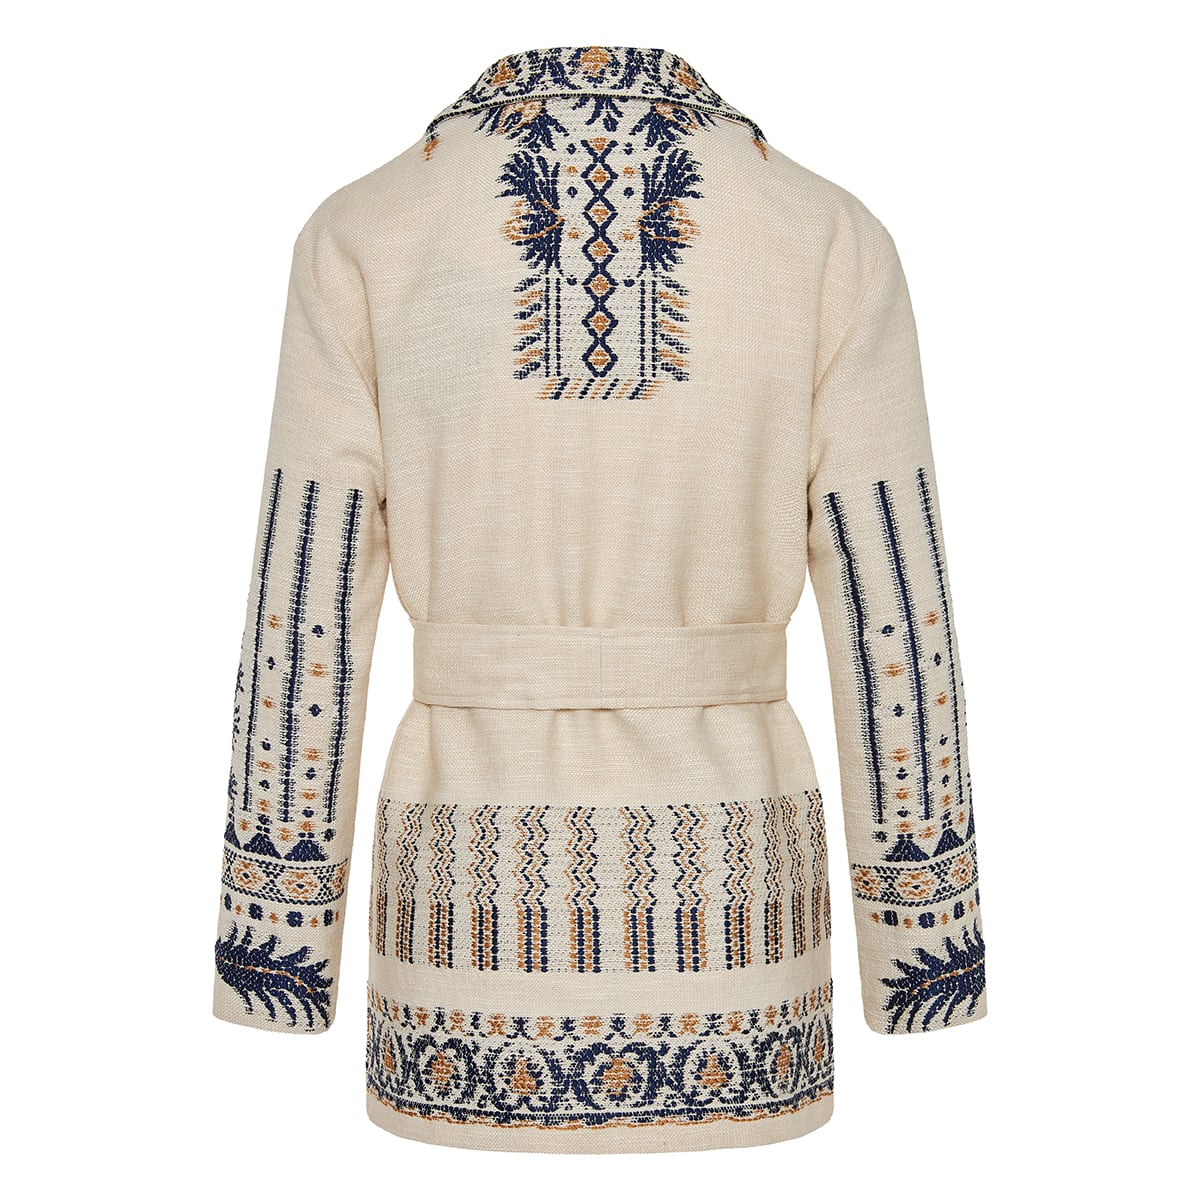 Embroidered jacquard belted cardigan